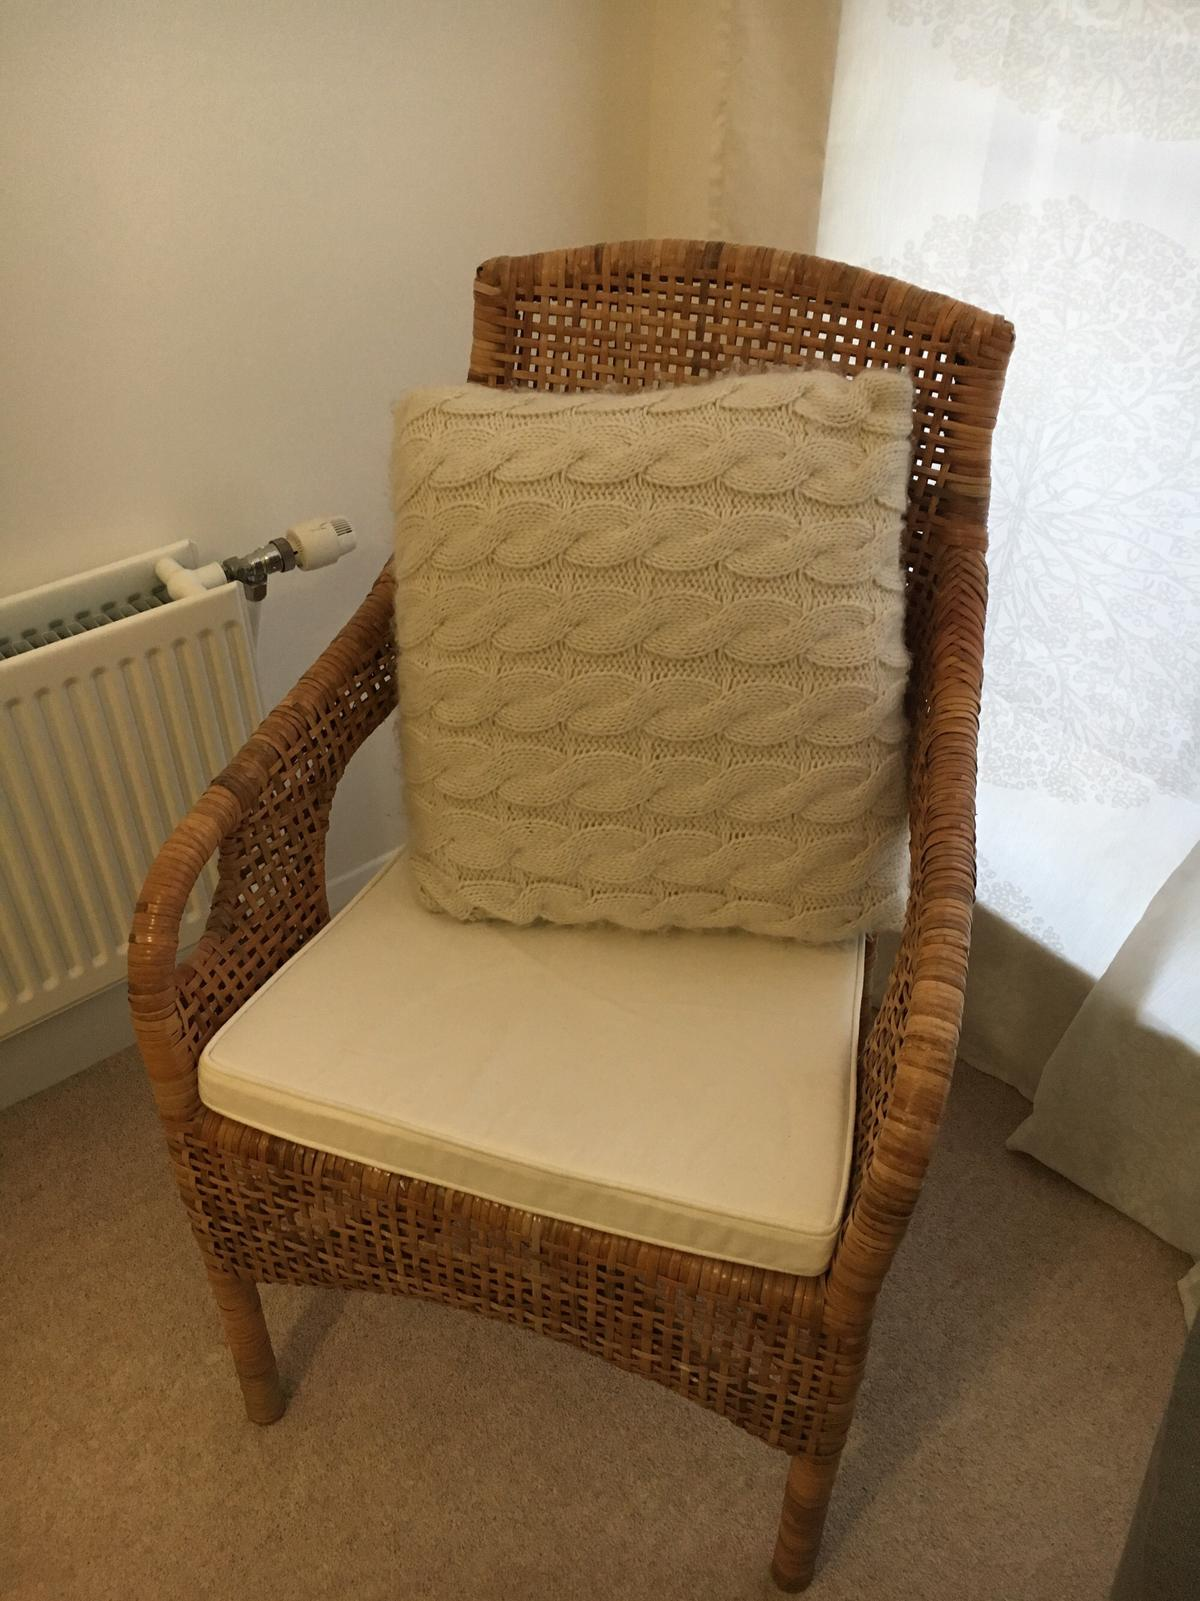 Rattan Ikea Ikea Agen Rattan Chair With Seat Cushion